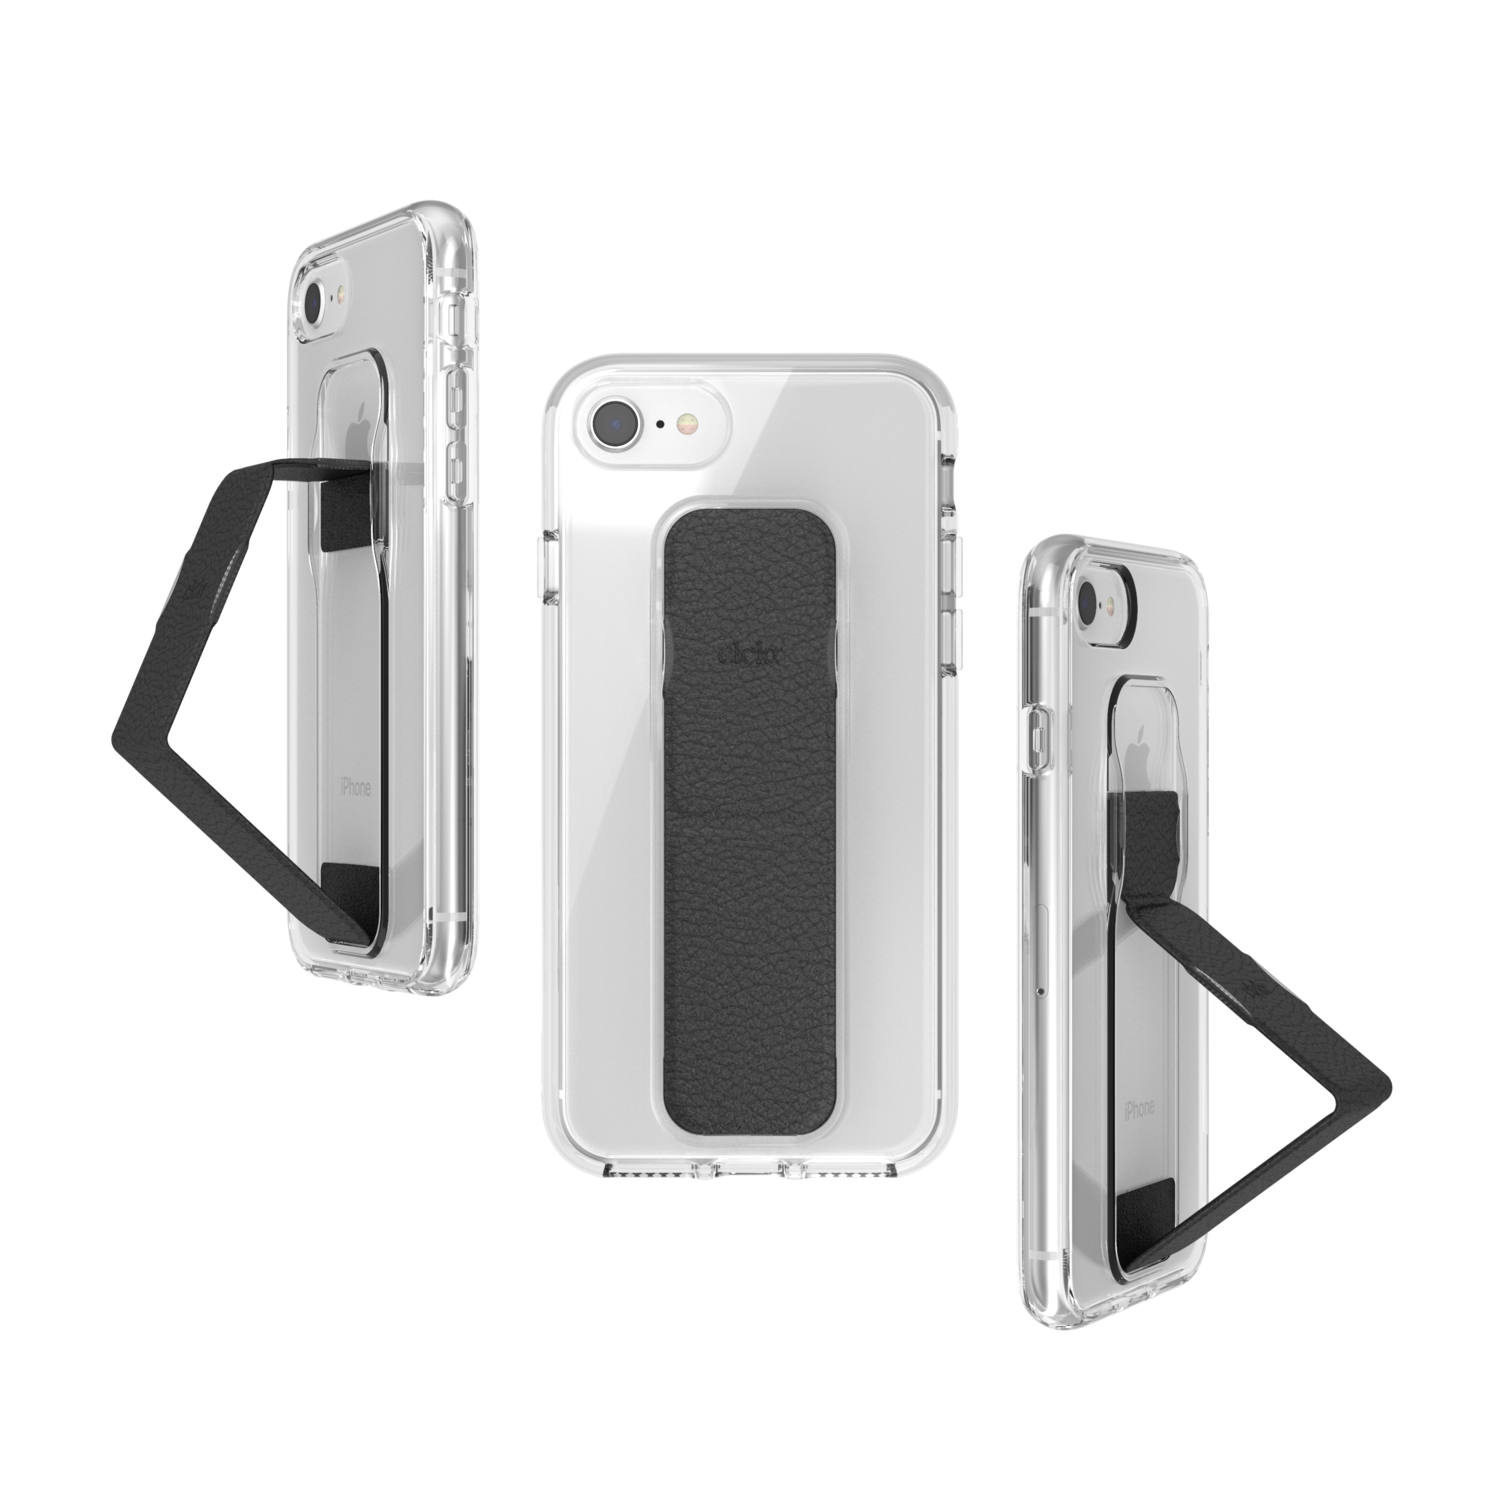 CLCKR CLEAR GRIPCASE FOUNDATION for IPhone 6/6s/7/8/SE 2G clear/black